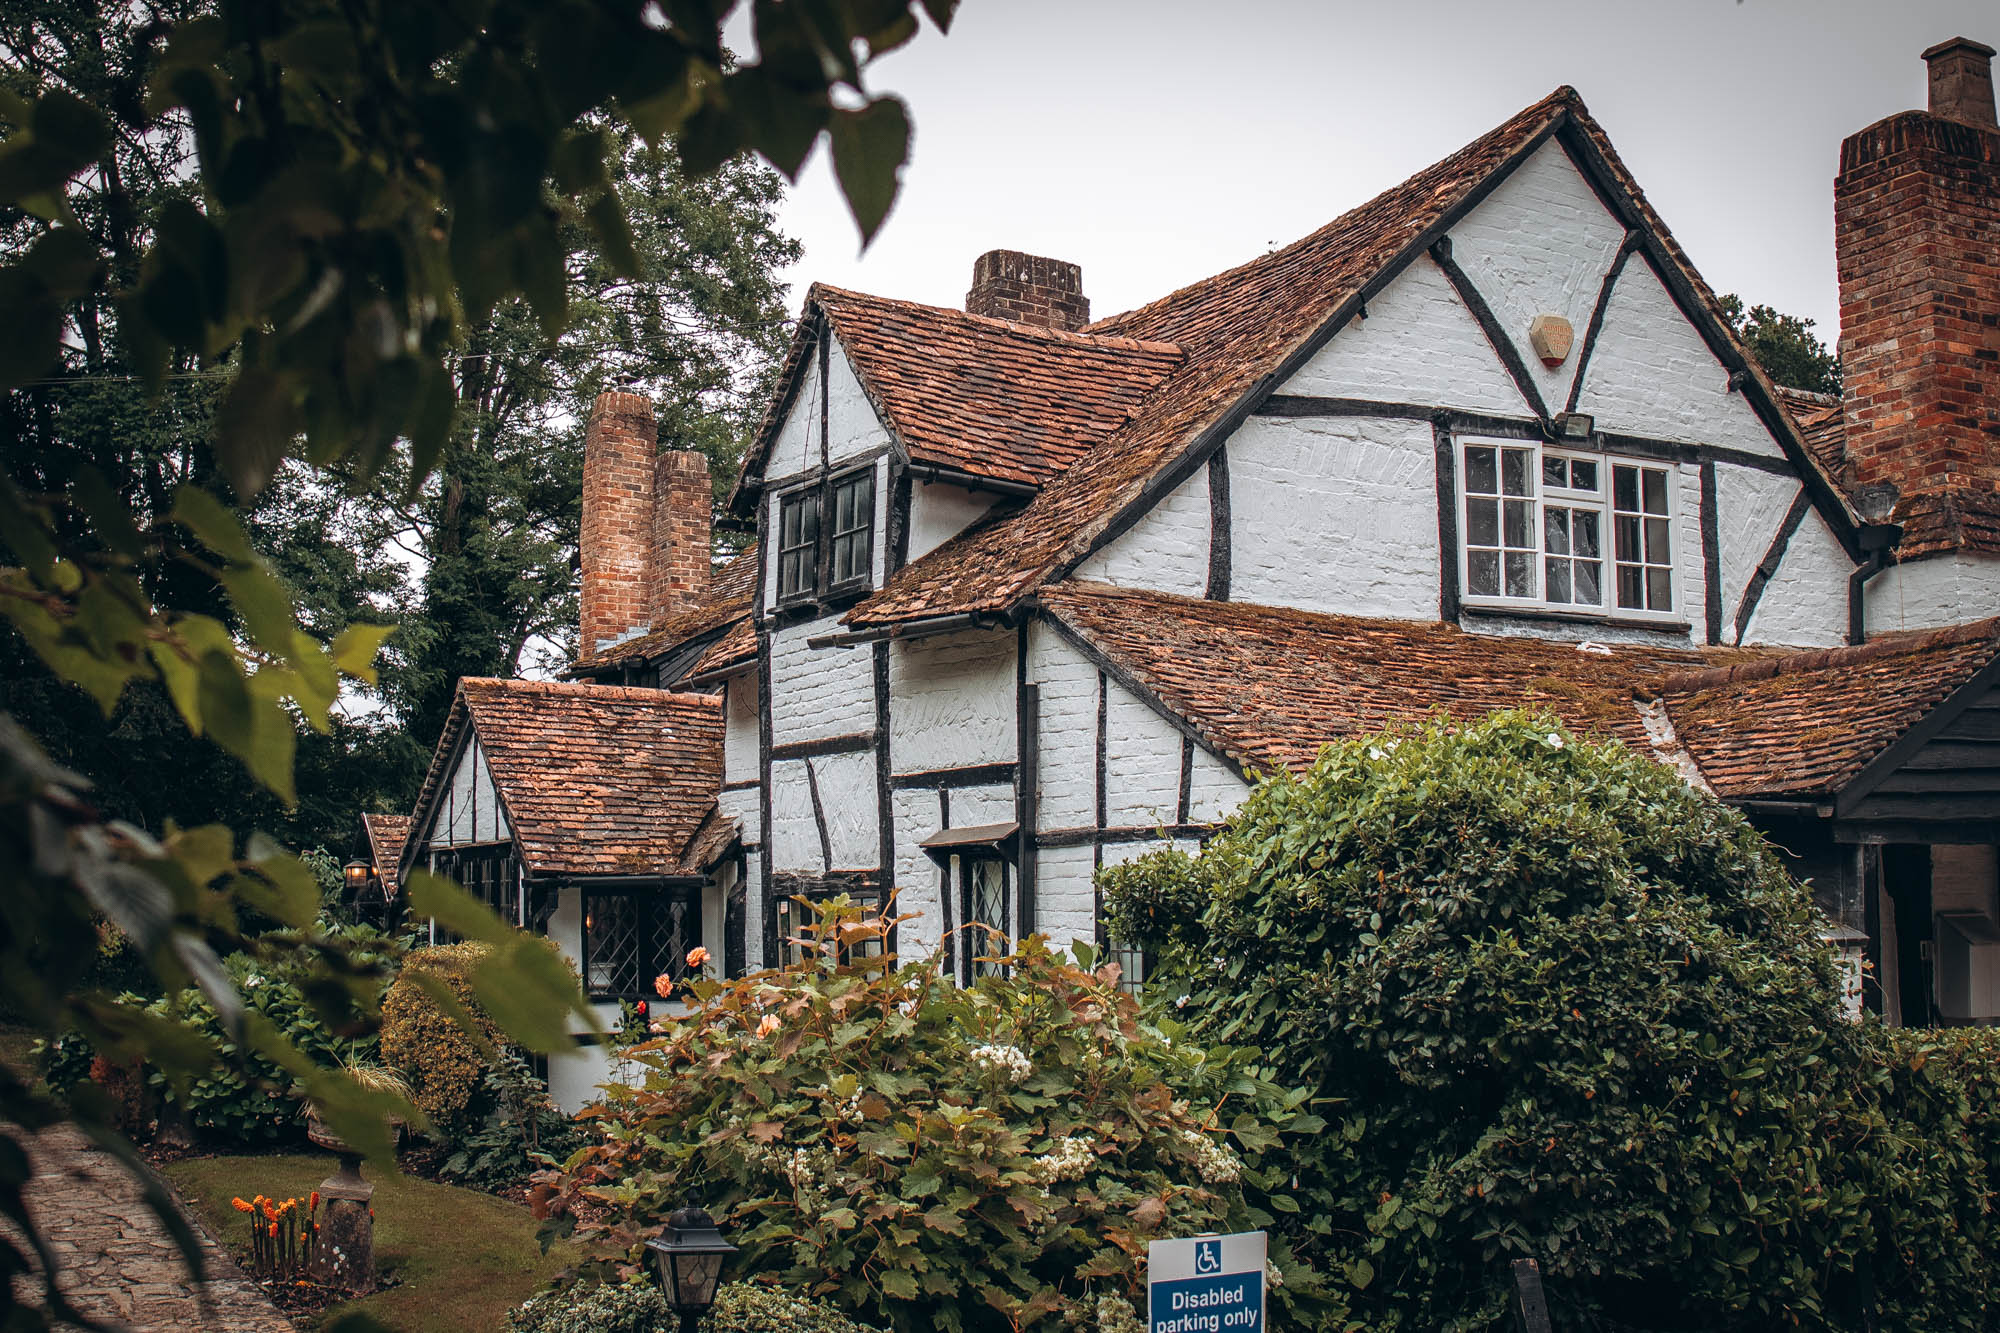 The Old House Inn, Copthorne   West Sussex